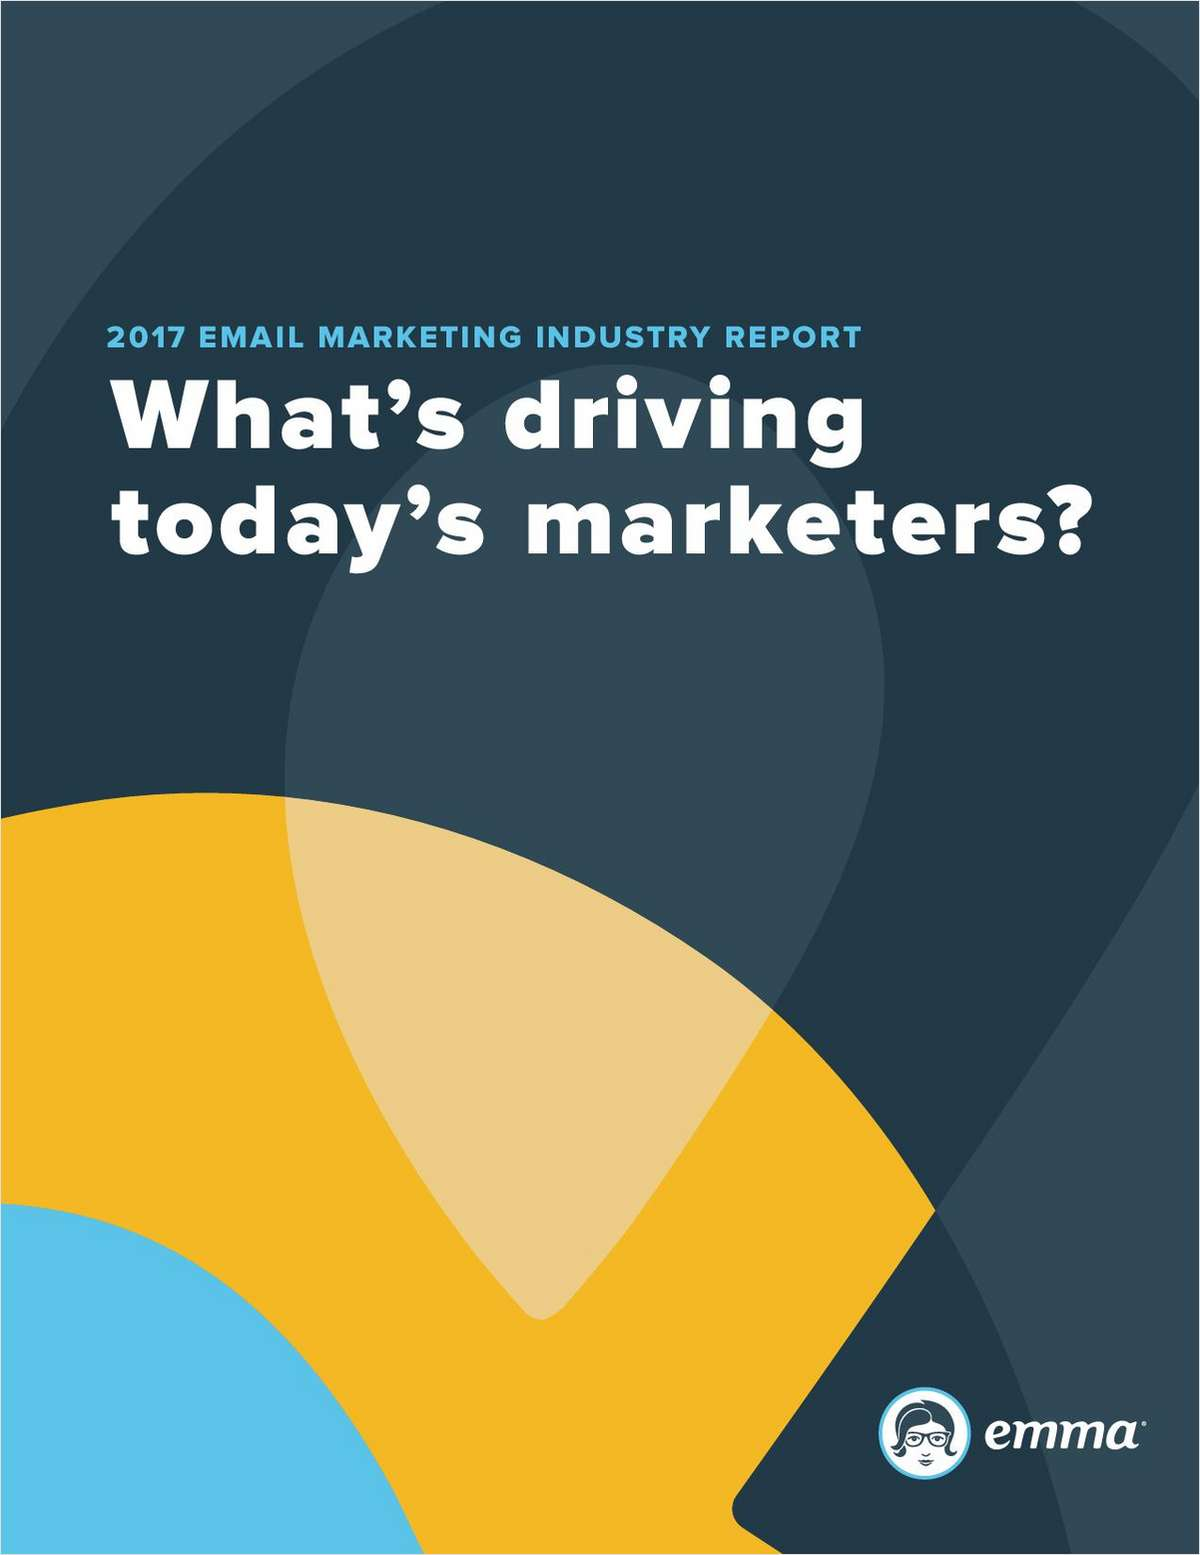 What's Driving Today's Marketers?